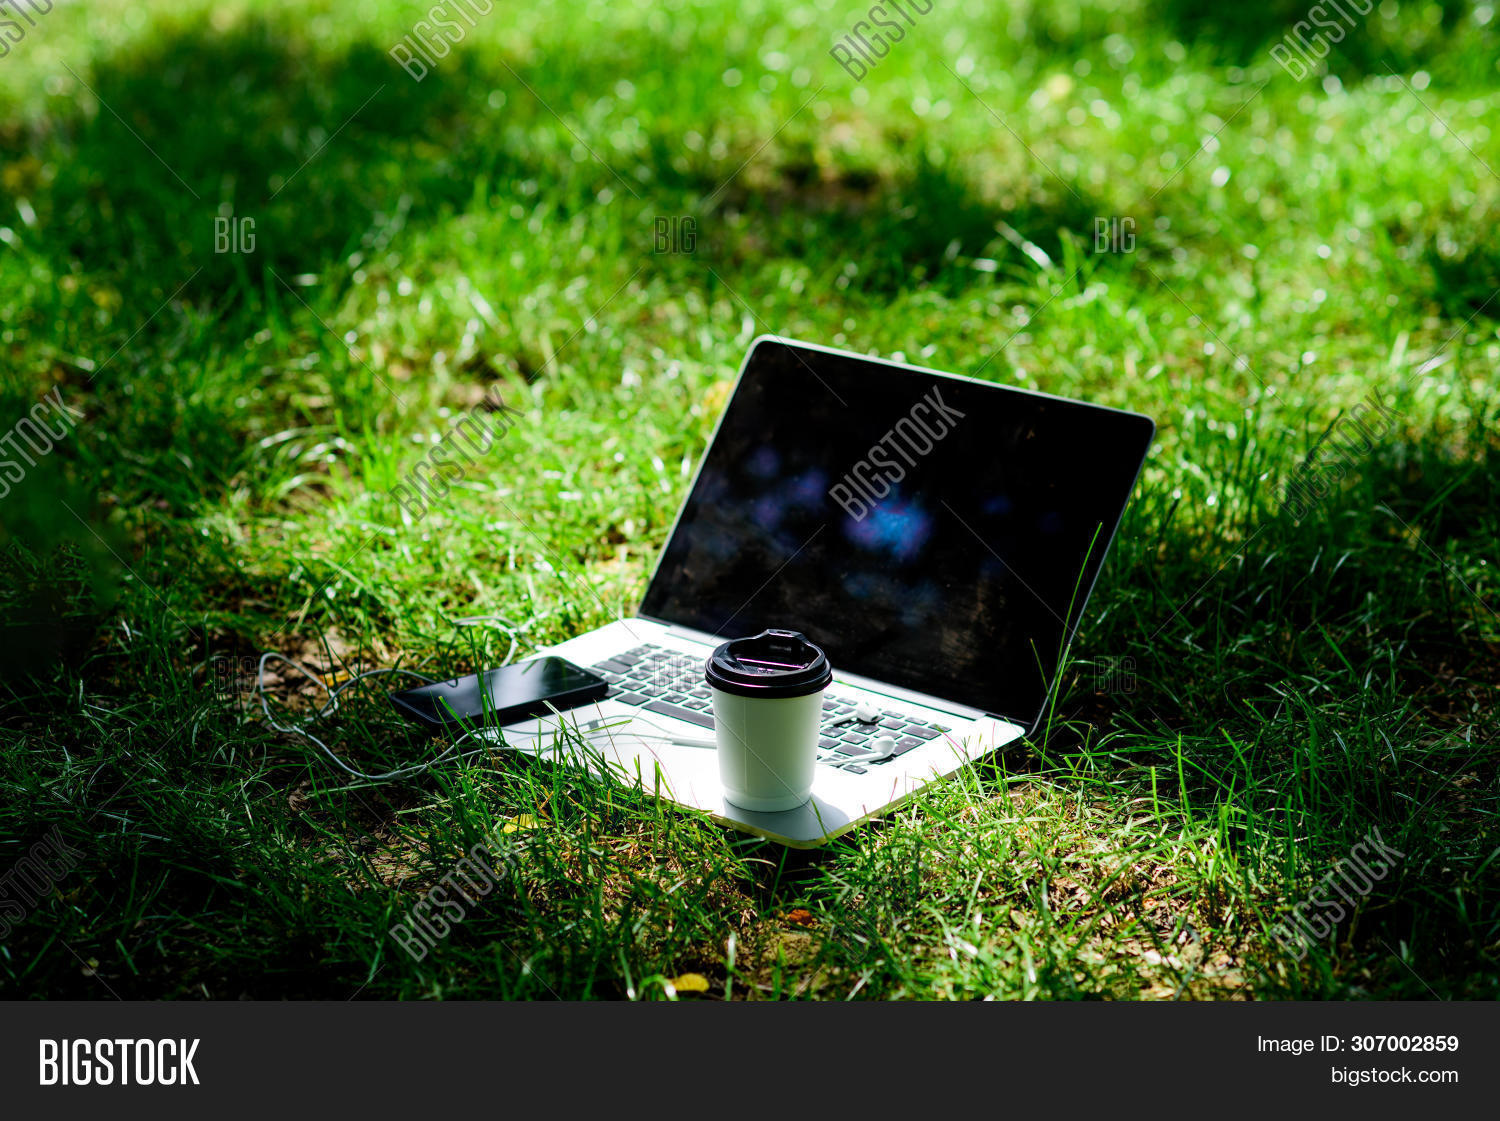 Coffee Break Outdoors. Summer Park. Work And Relax In Natural Environment. Its Coffee Time. Coffee T